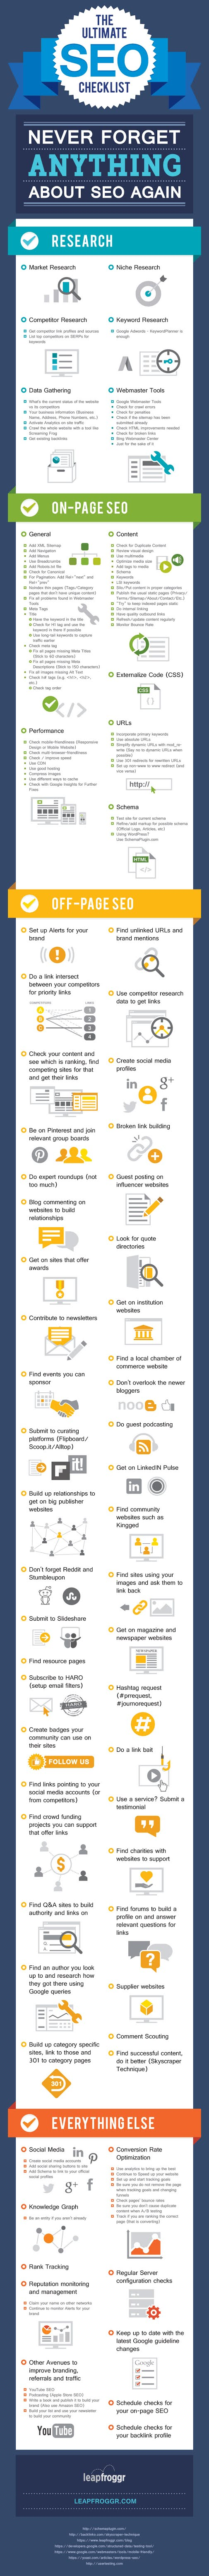 The Ultimate SEO Checklist #infographic